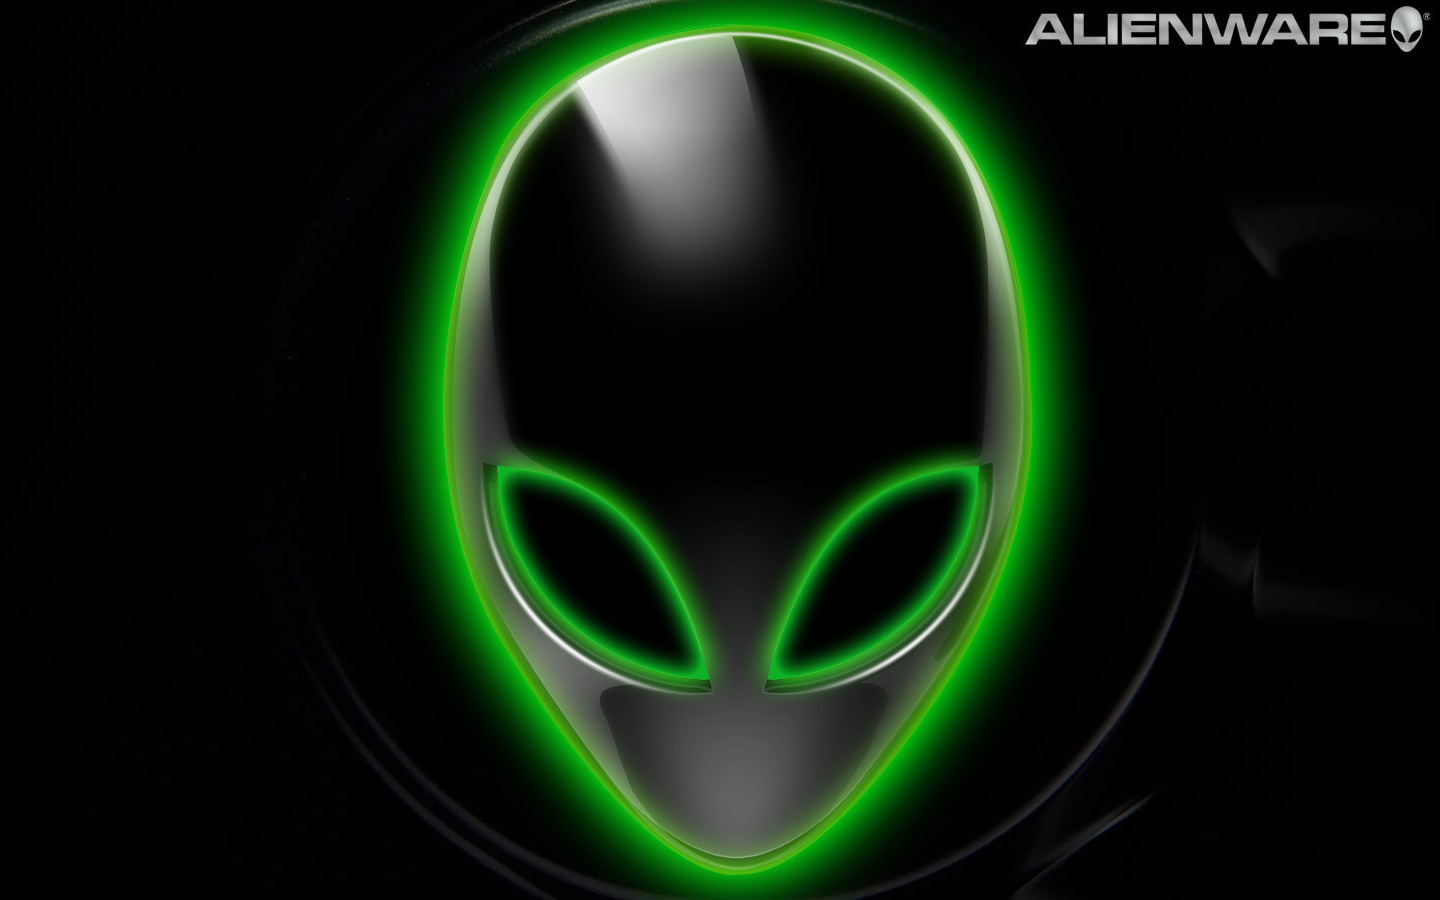 Green Alienware HD Desktop Wallpaper VIOTABI IMAGES 1440x900